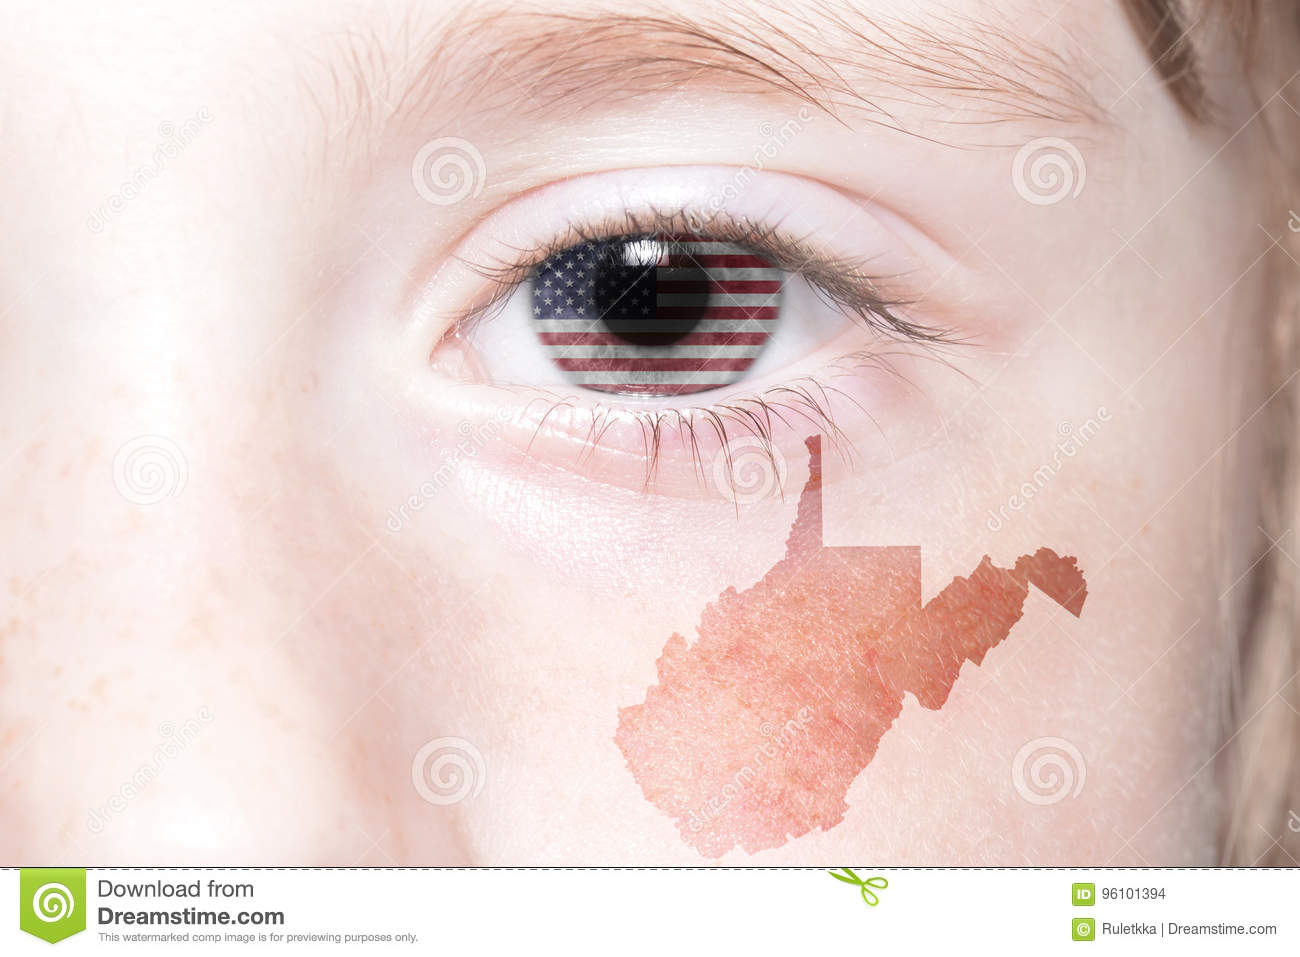 Human`s face with national flag of united states of america and west virginia state map